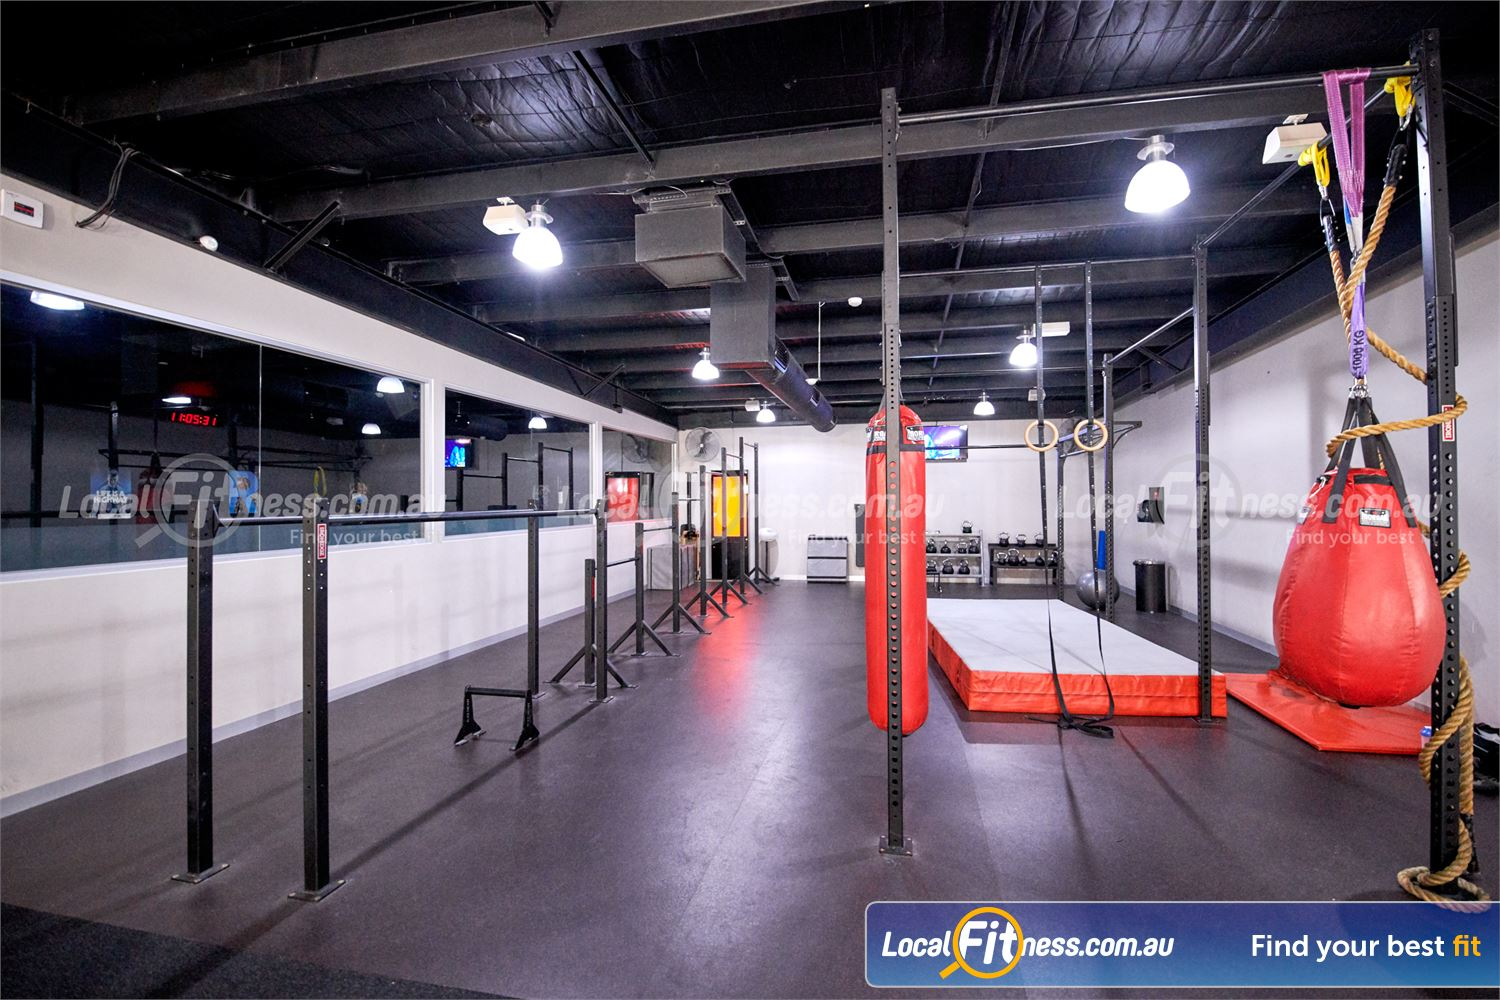 Fitness First Near Wheelers Hill Hang, dip, press, planche, muscle-up on our gymnastic matrix strength area.